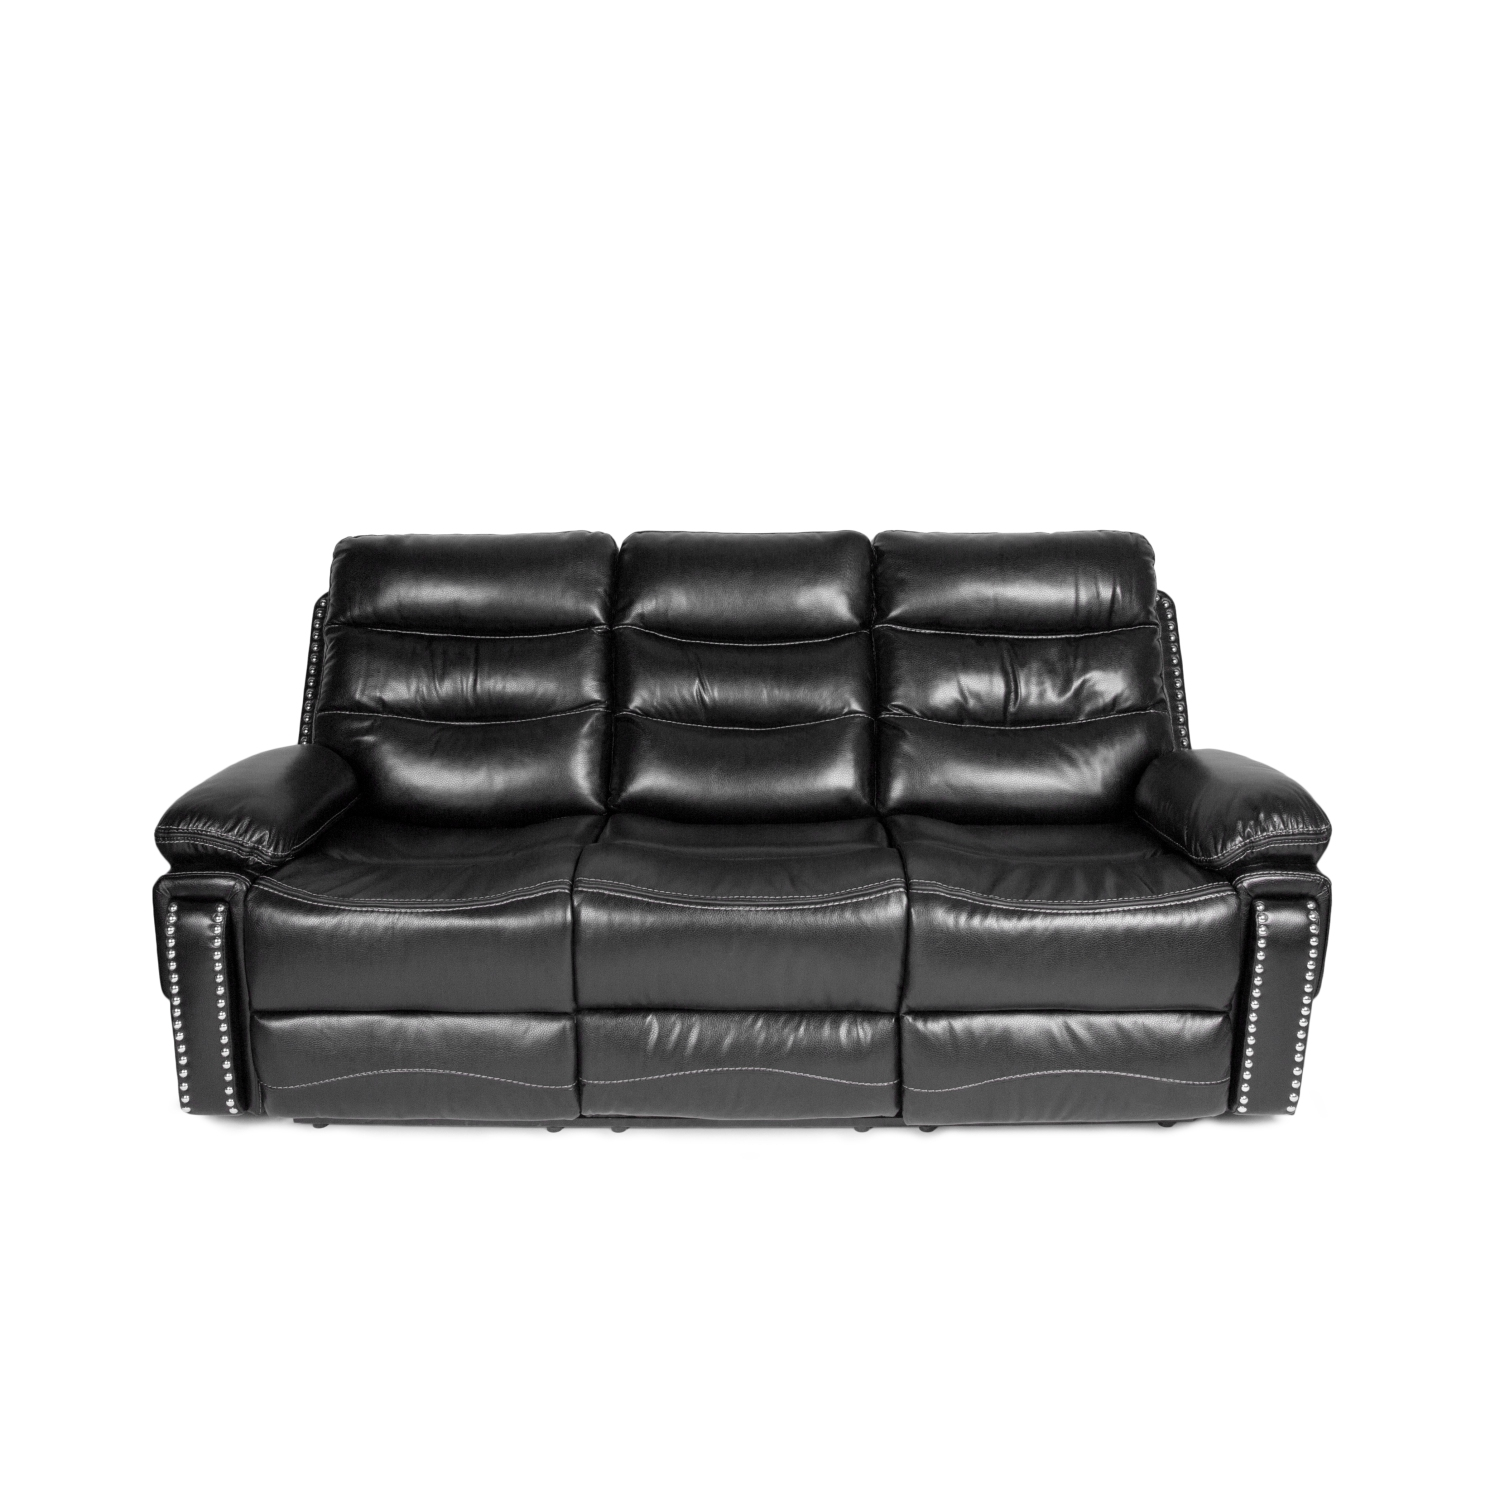 Discount Leather Chairs Living Room Furniture Best Buy Canada